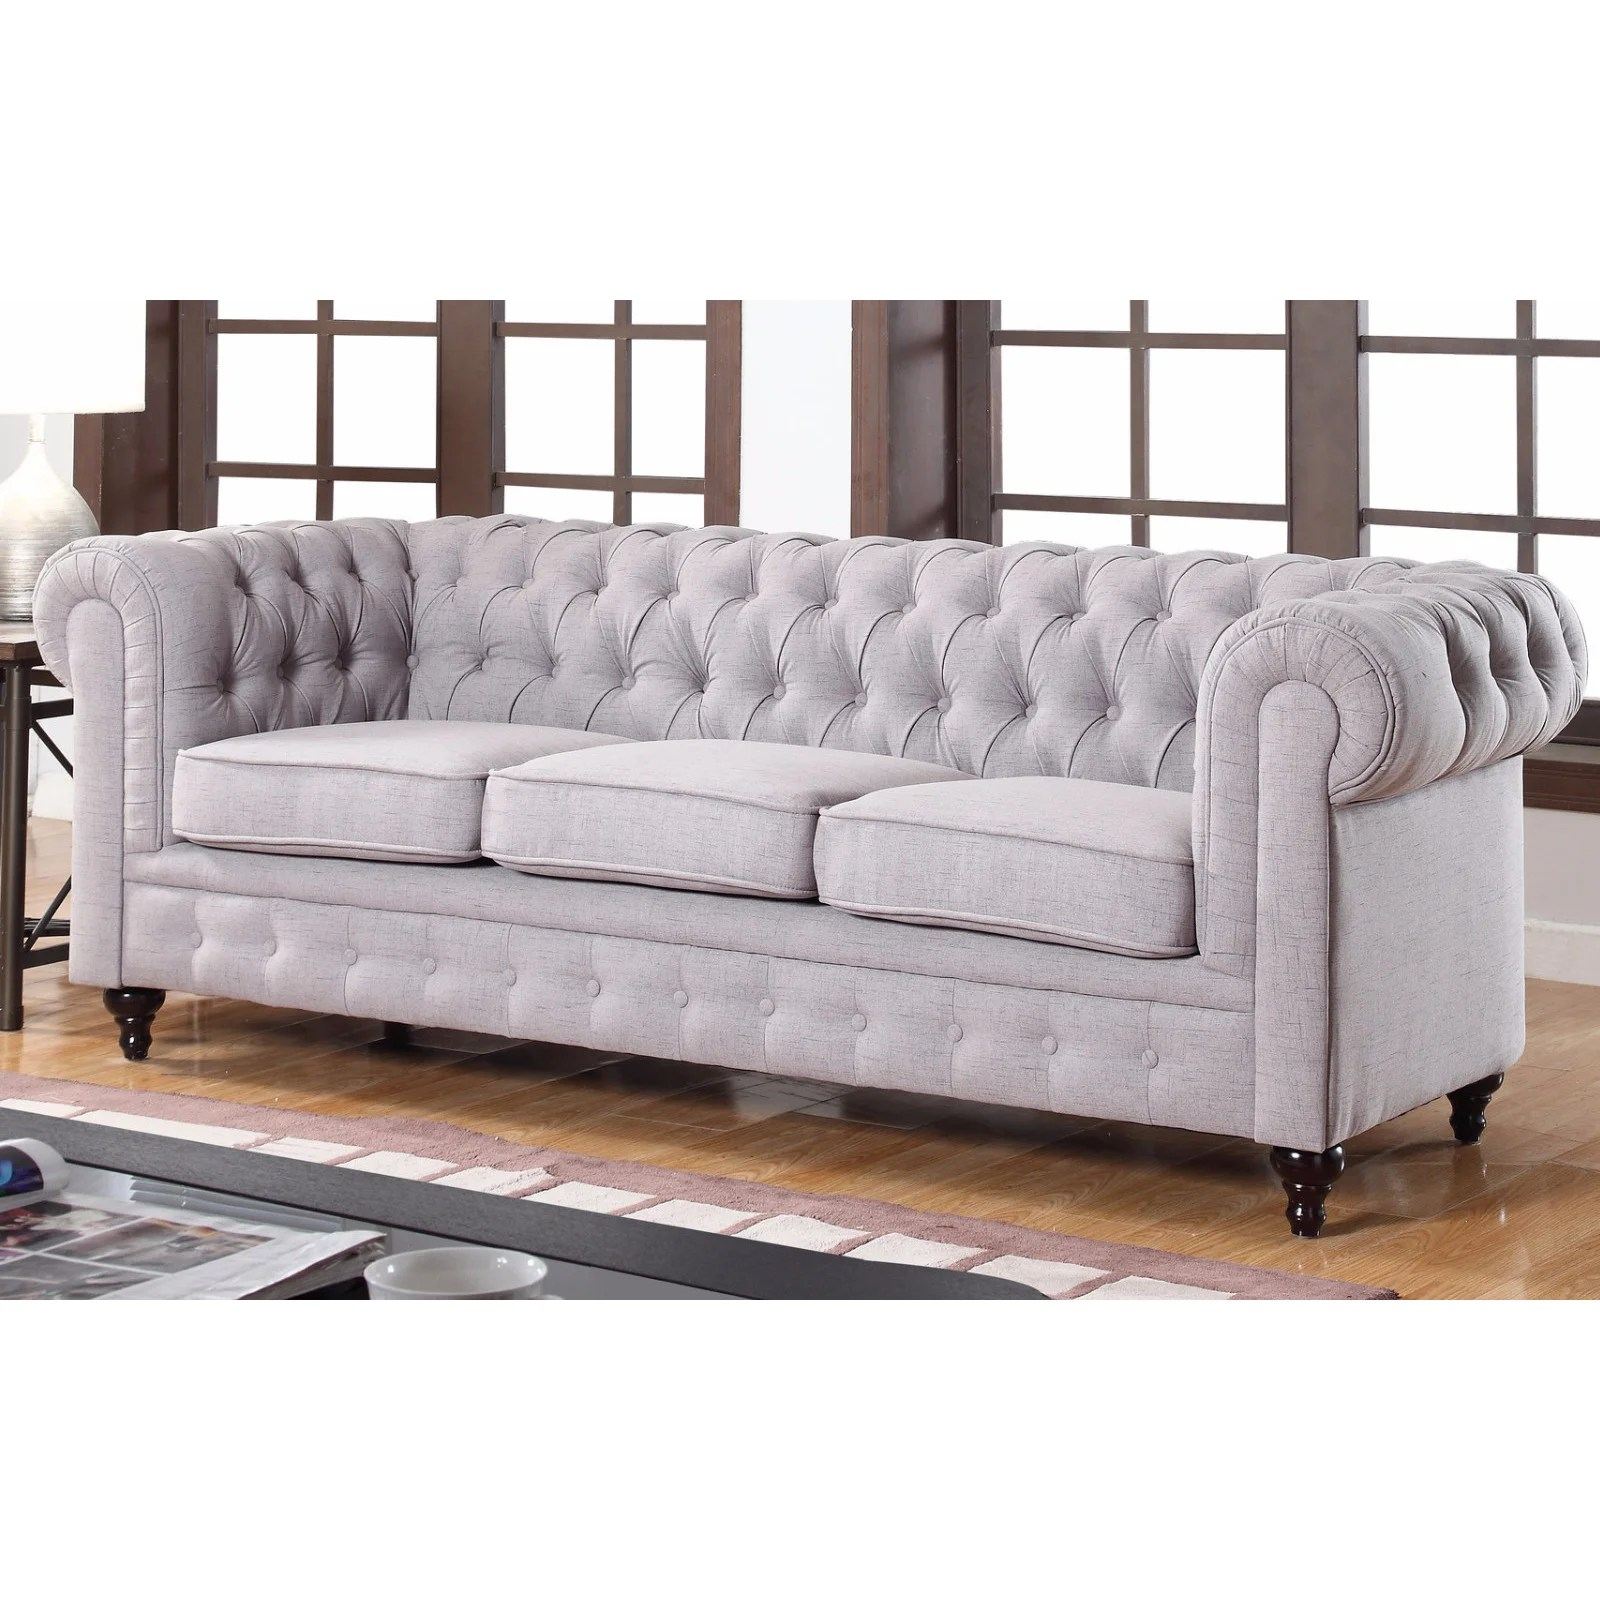 tribecca home knightsbridge beige linen tufted scroll arm chesterfield sofa custom sofas sacramento grey meridian furniture 662gry s